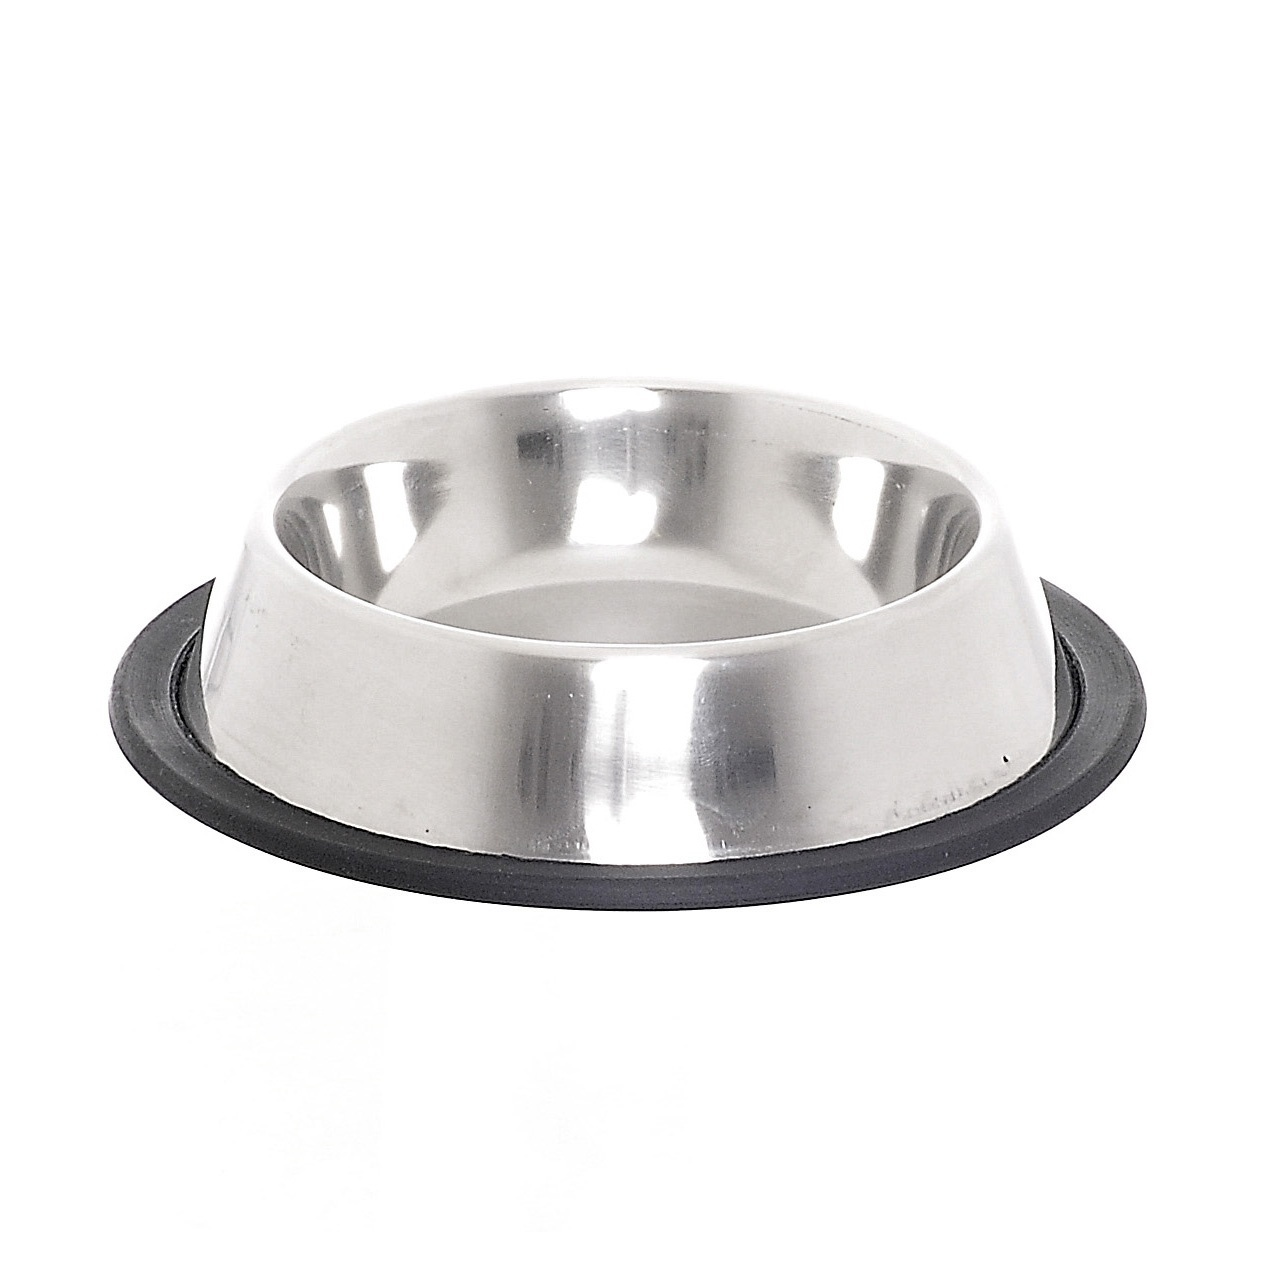 PAPILLON Миска с нескользящим покрытием 29 см, 1,8 л, Anti skid feed bowl